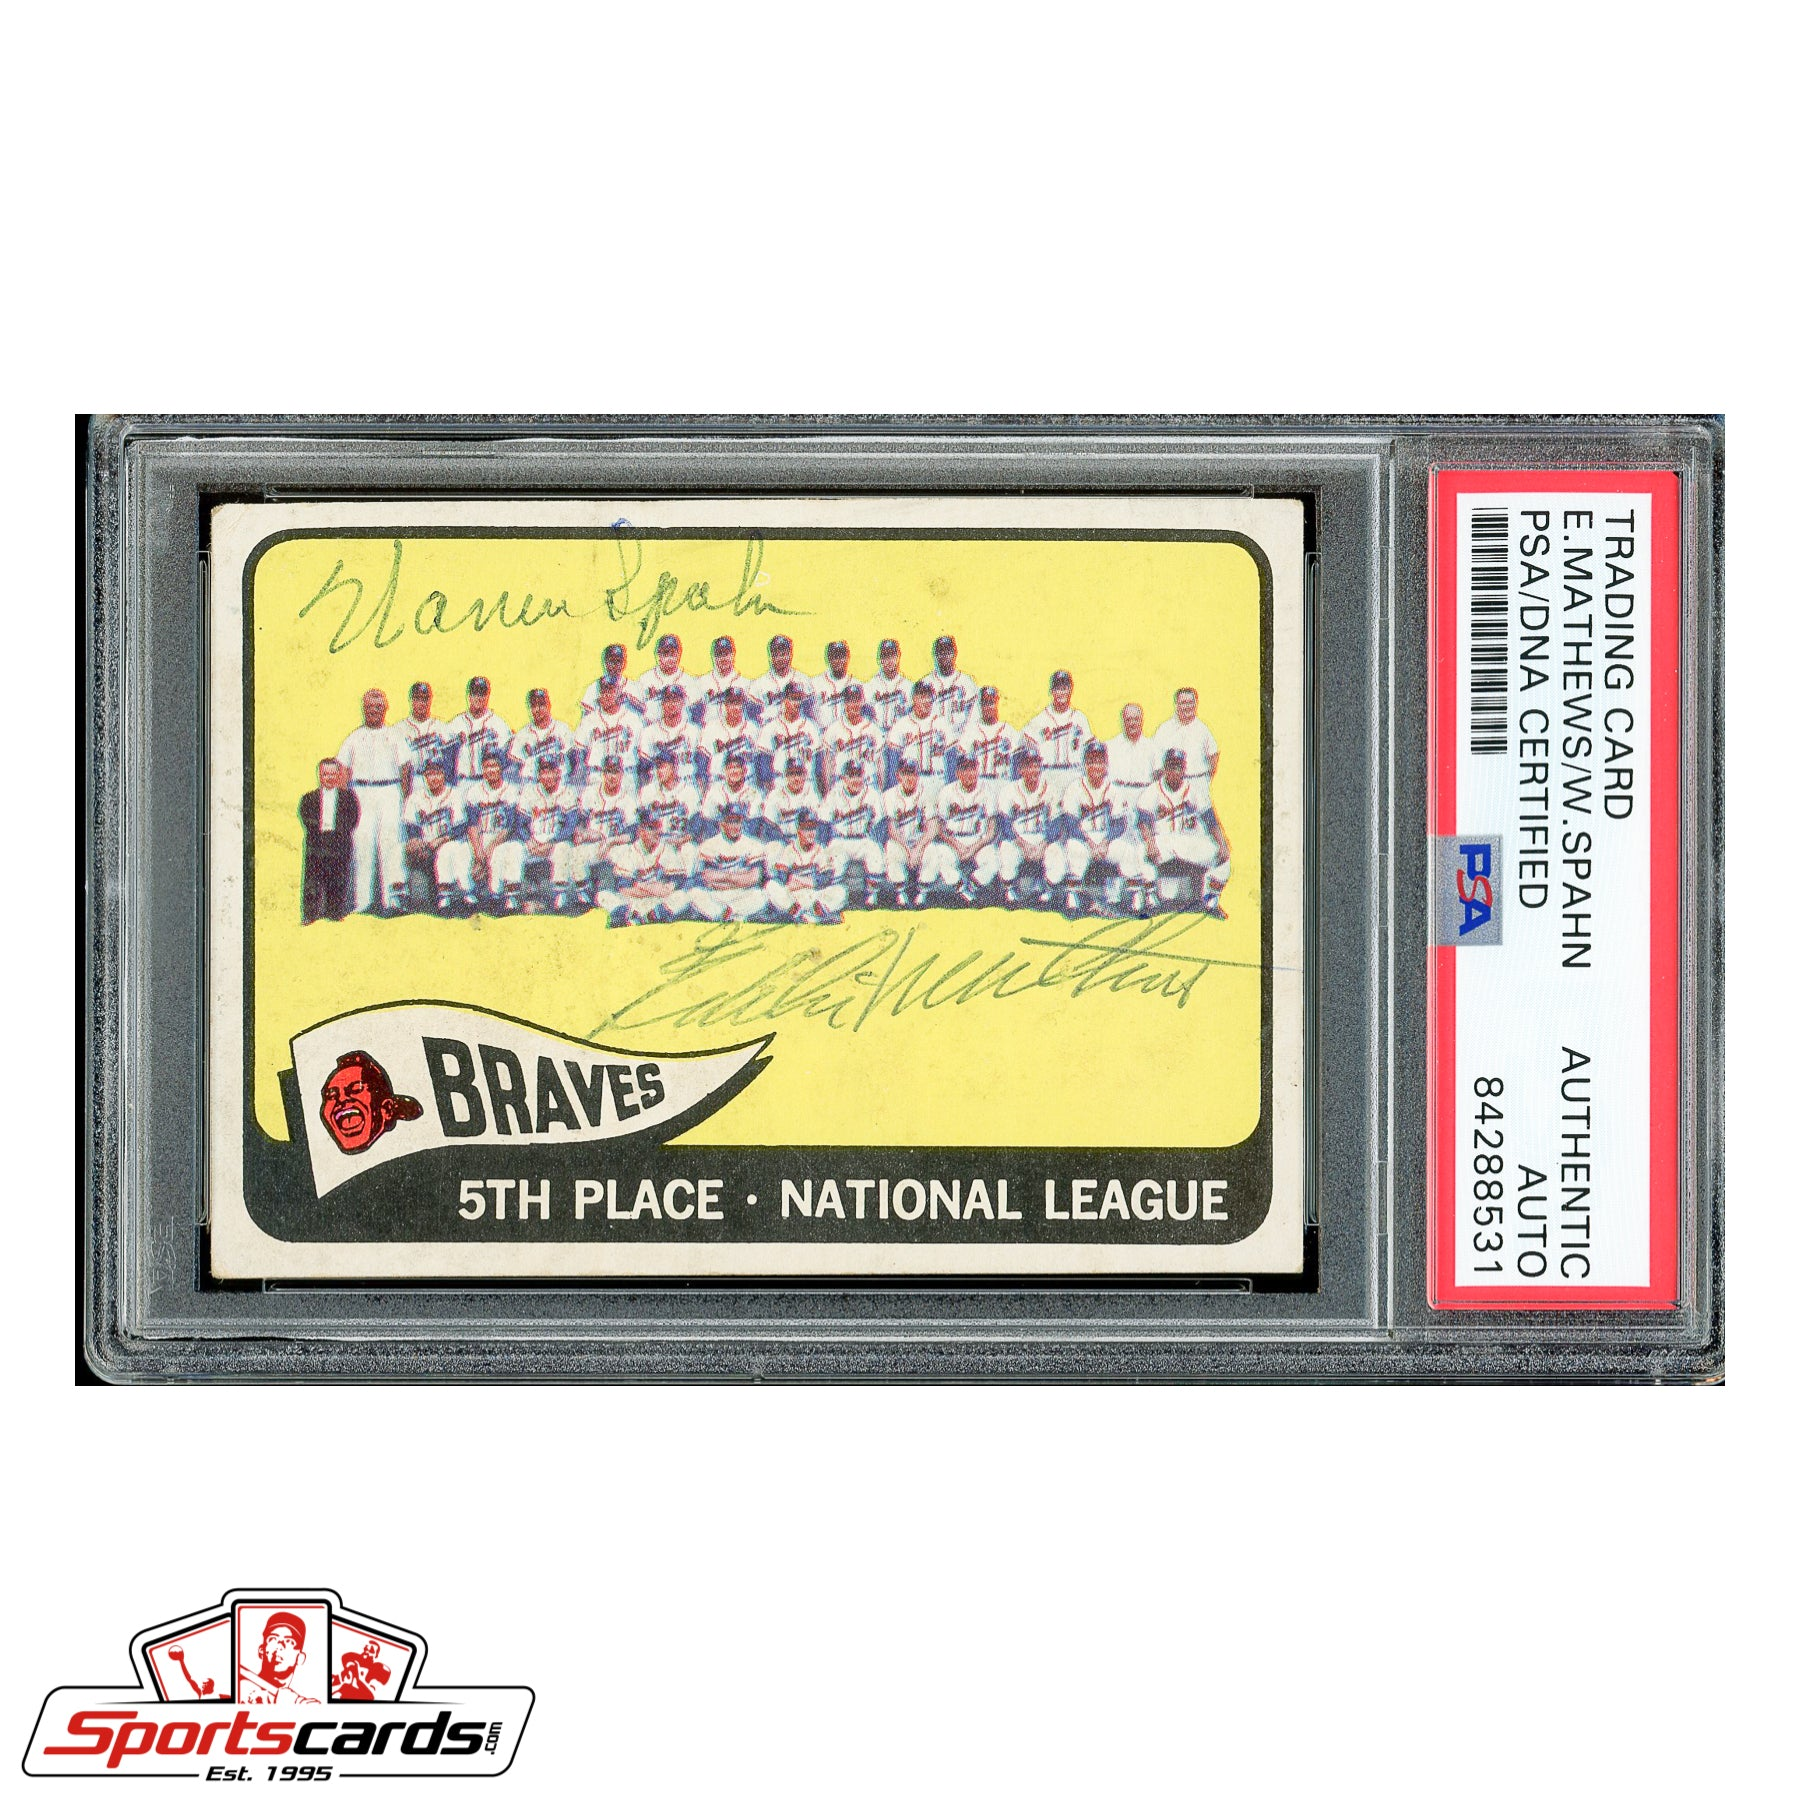 Eddie Mathews & Warren Spahn Signed Auto 1965 Topps Braves Team Card #426 - PSA/DNA